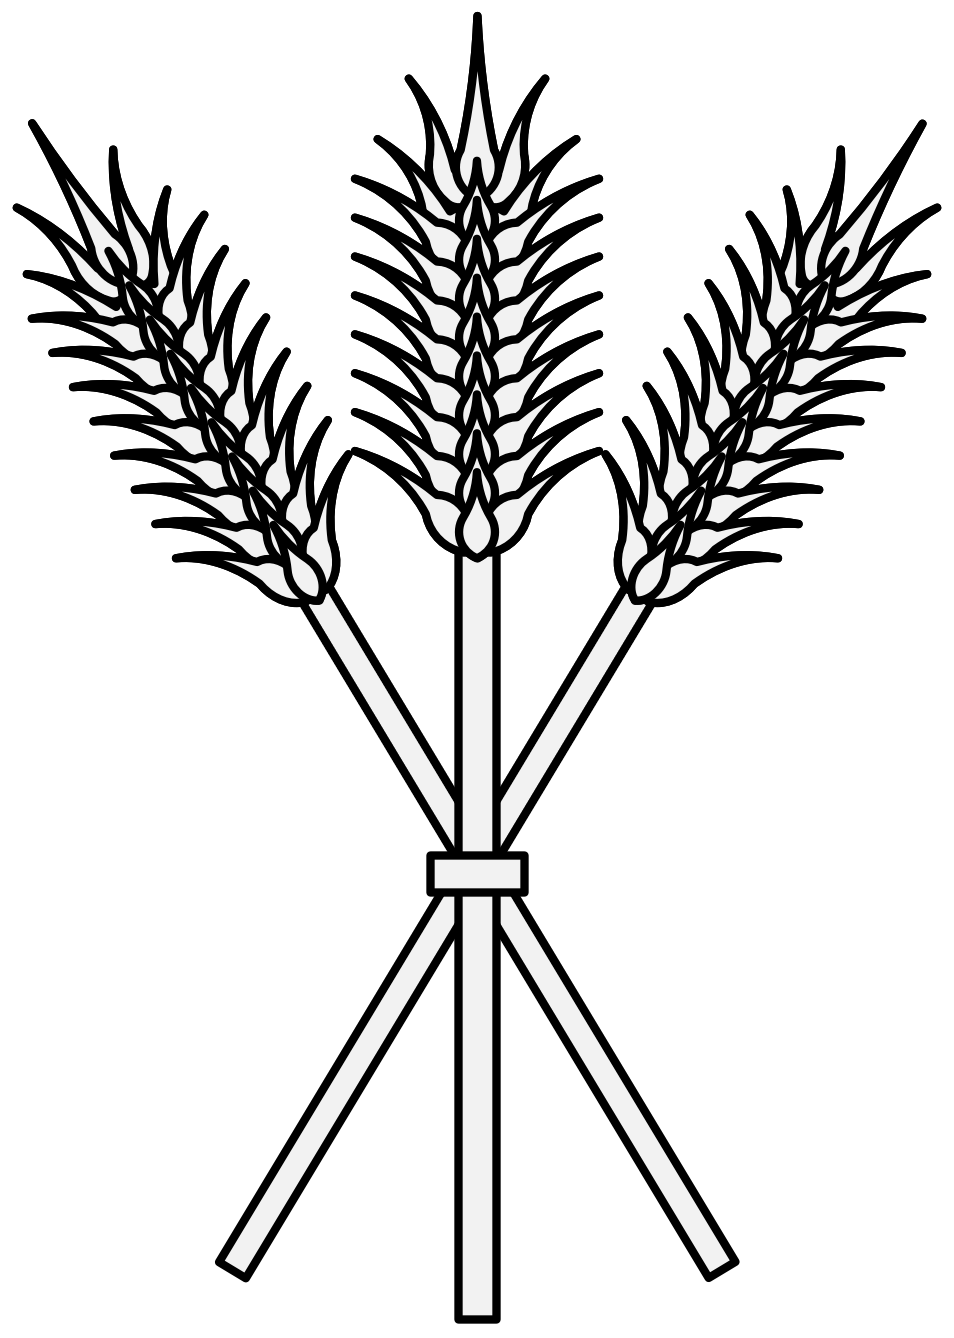 clip free download Wheat Line Drawing at GetDrawings